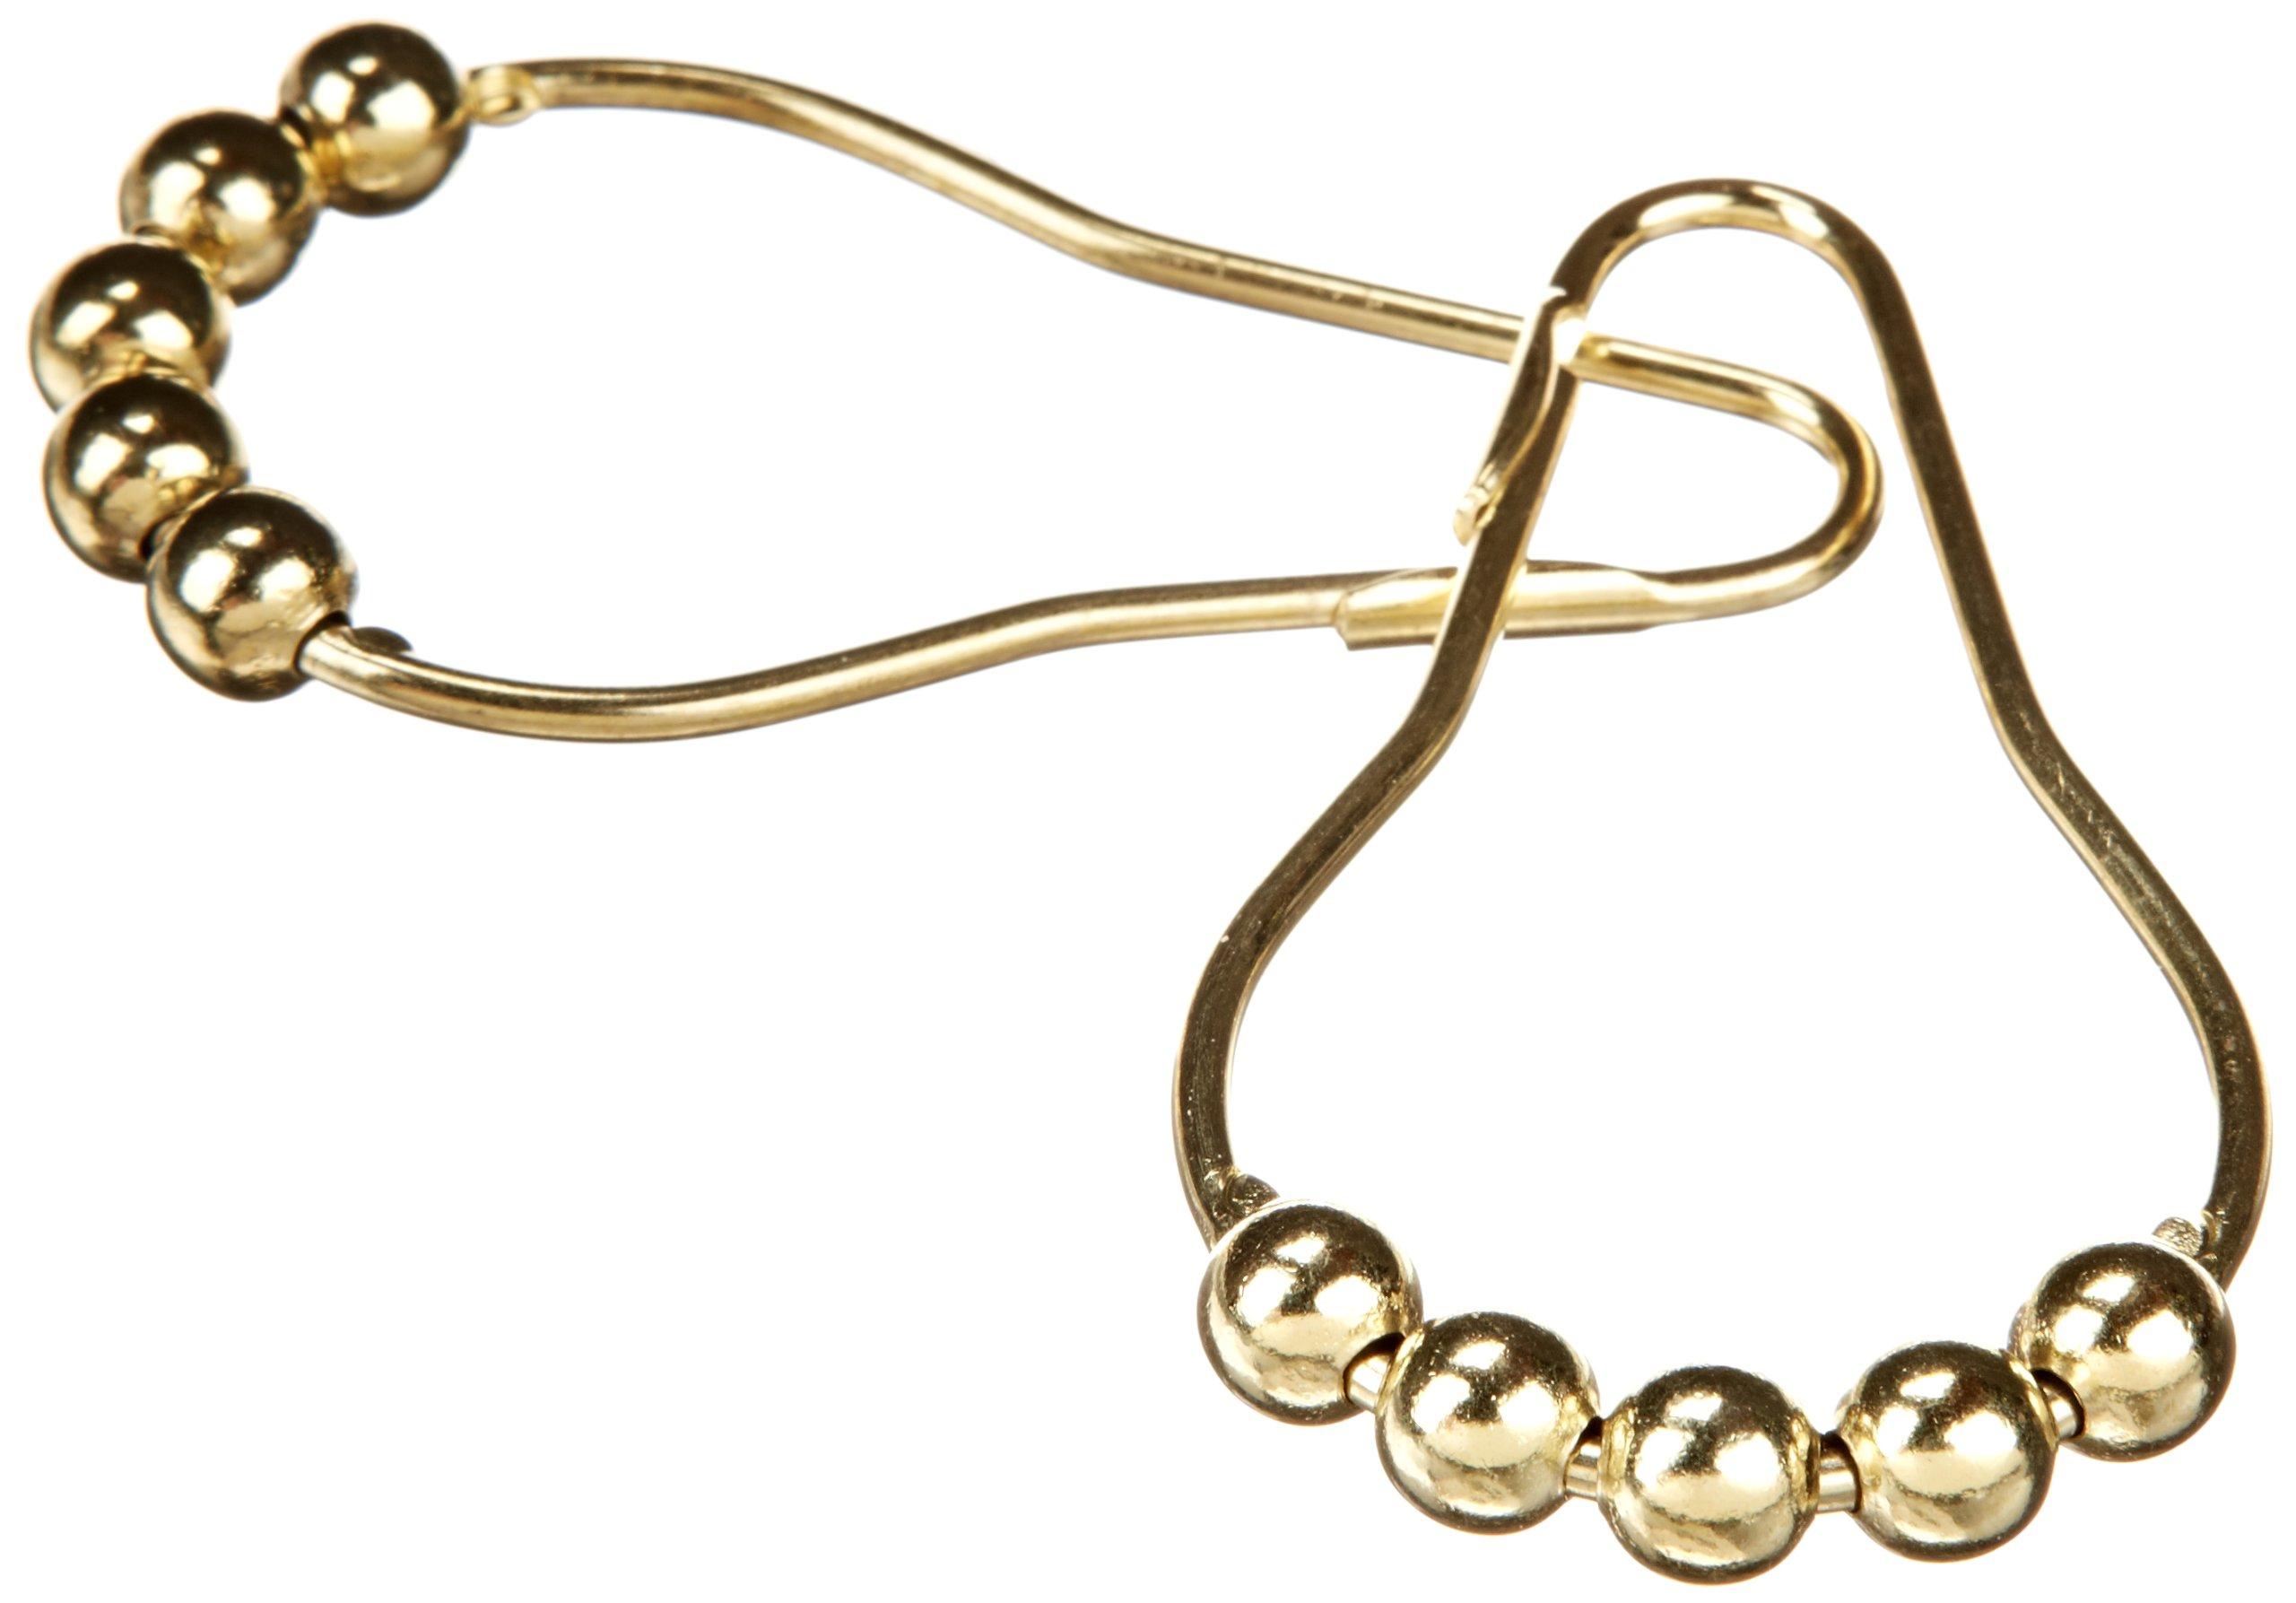 Heavy Duty Roller Shower Curtain Rings, Polished Brass Clipperton RollerRings, Set of 12 by Clipperton Company